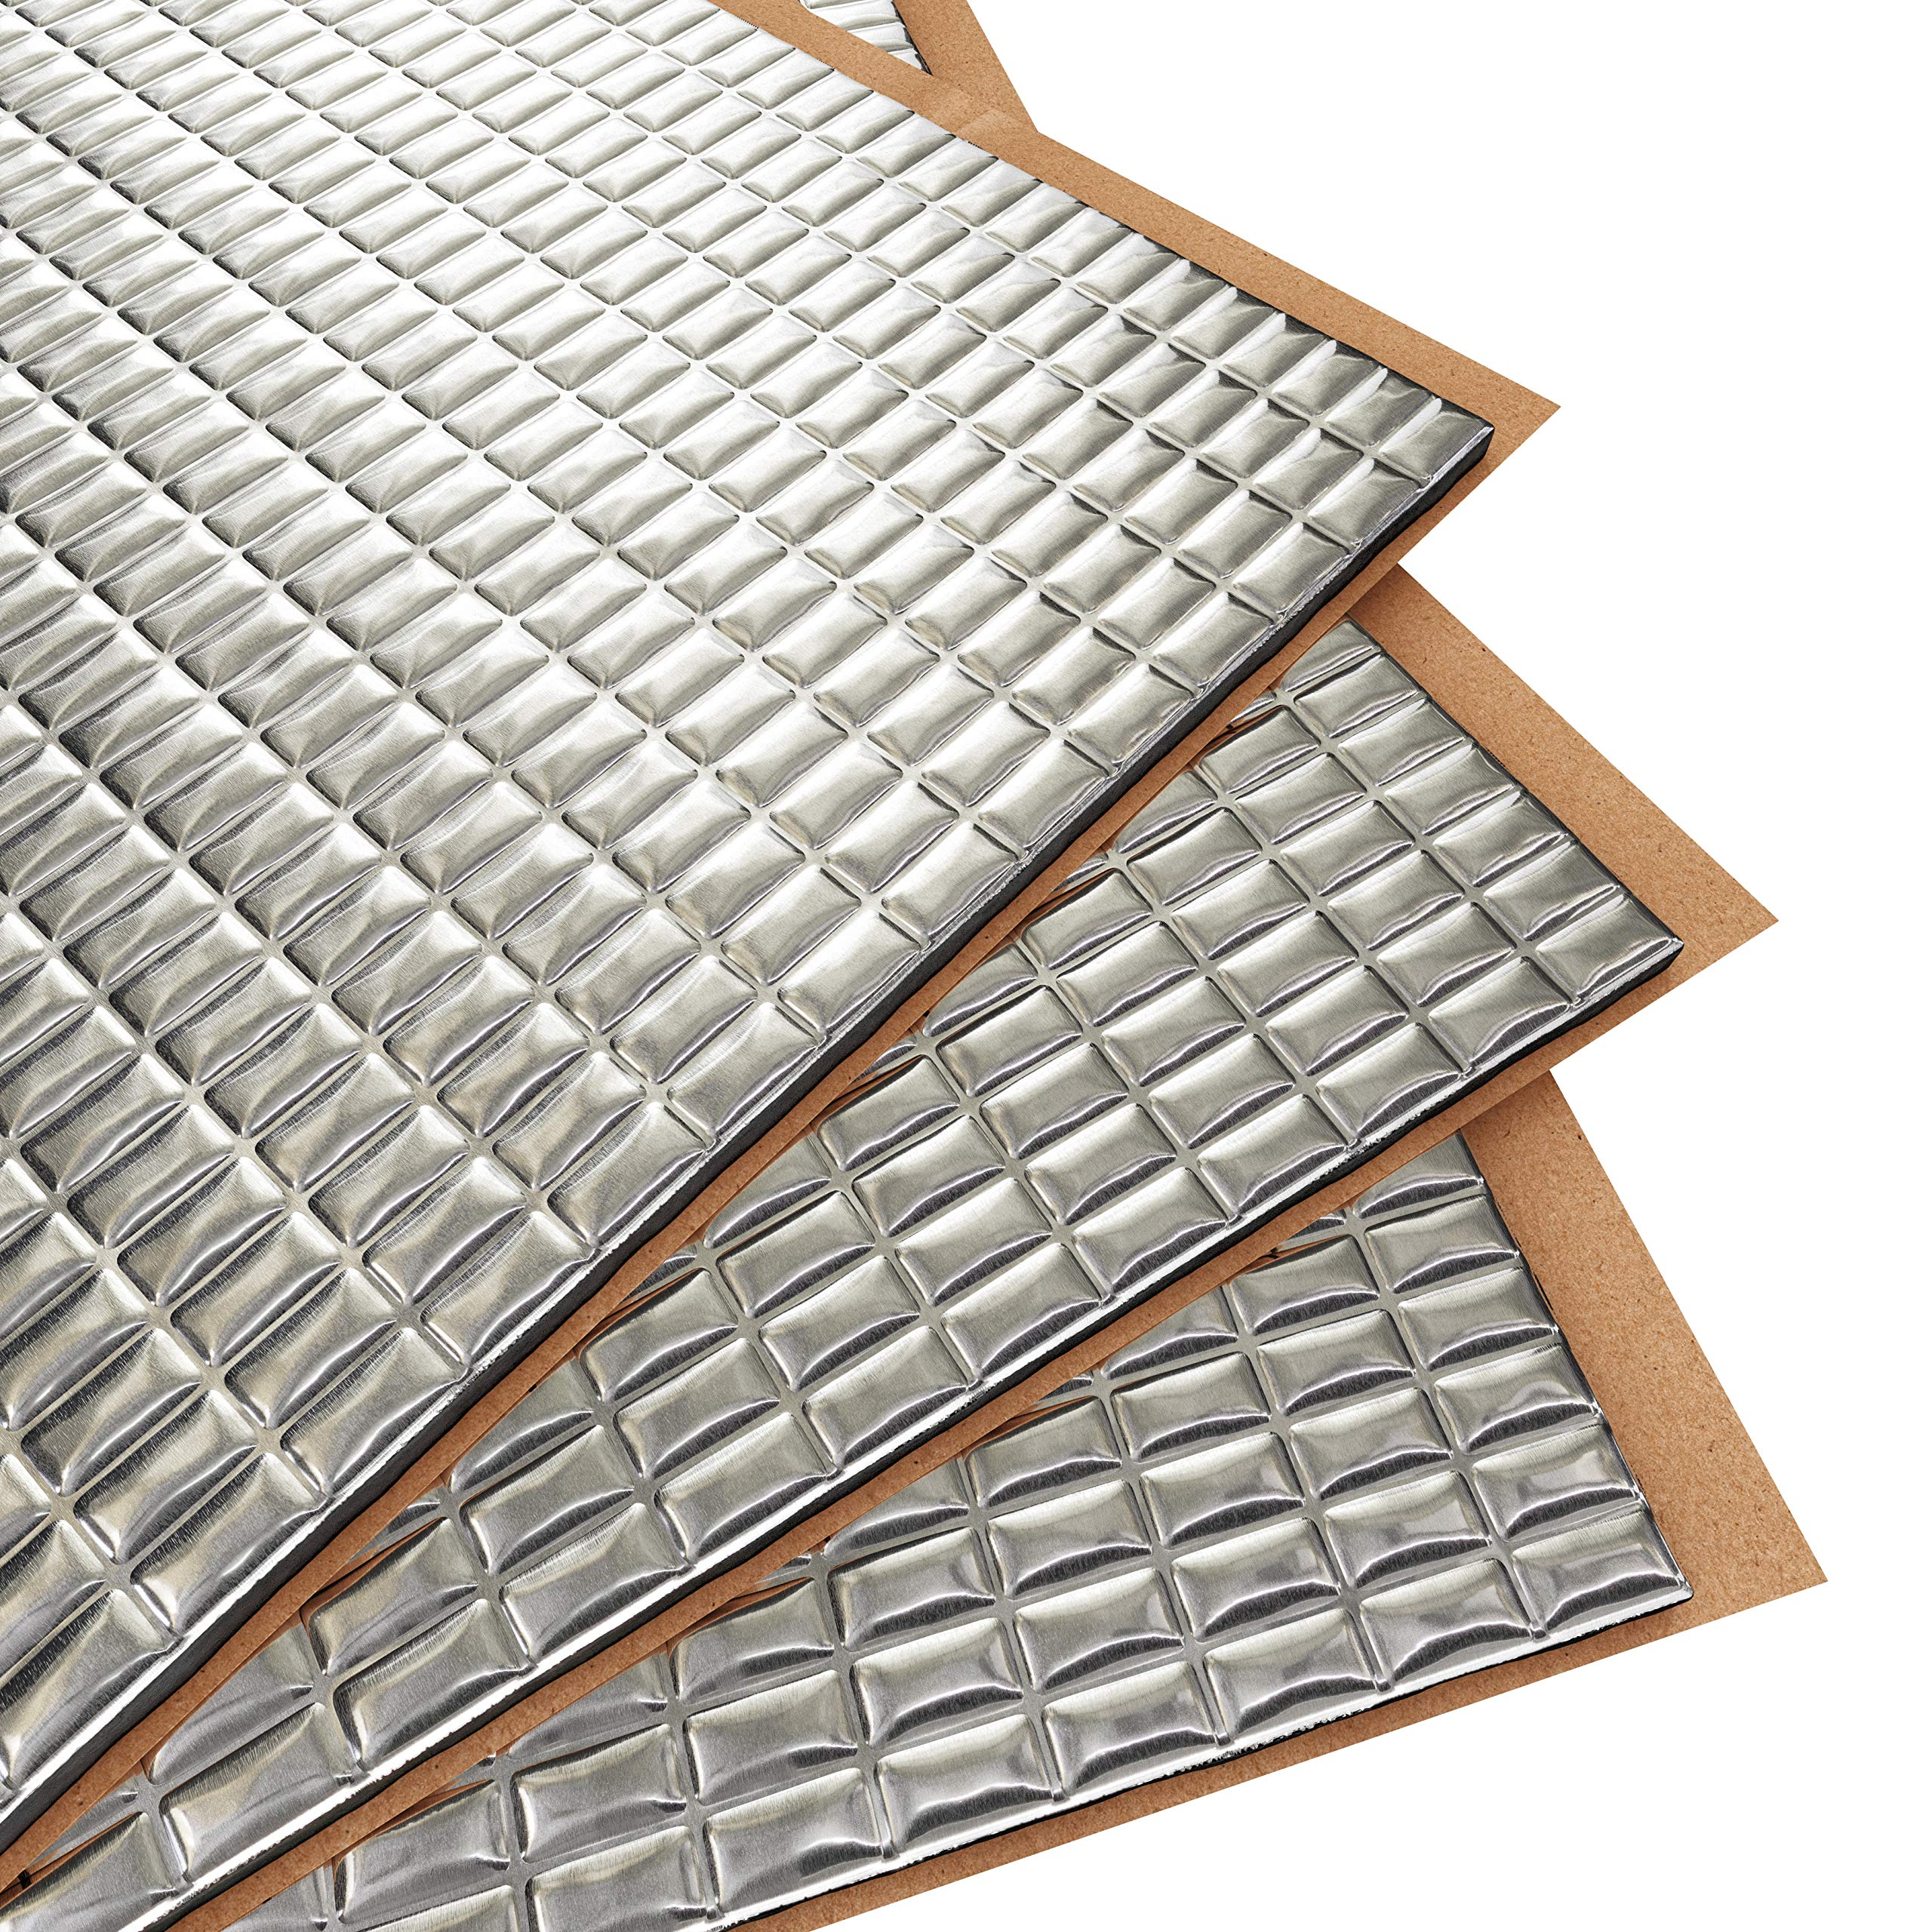 Siless 80 mil 36 sqft Sound Deadening mat | Sound Deadener Mat | Car Sound Dampening Material | Sound dampener | Sound deadening Material Sound Insulation | Car Sound deadening by Siless